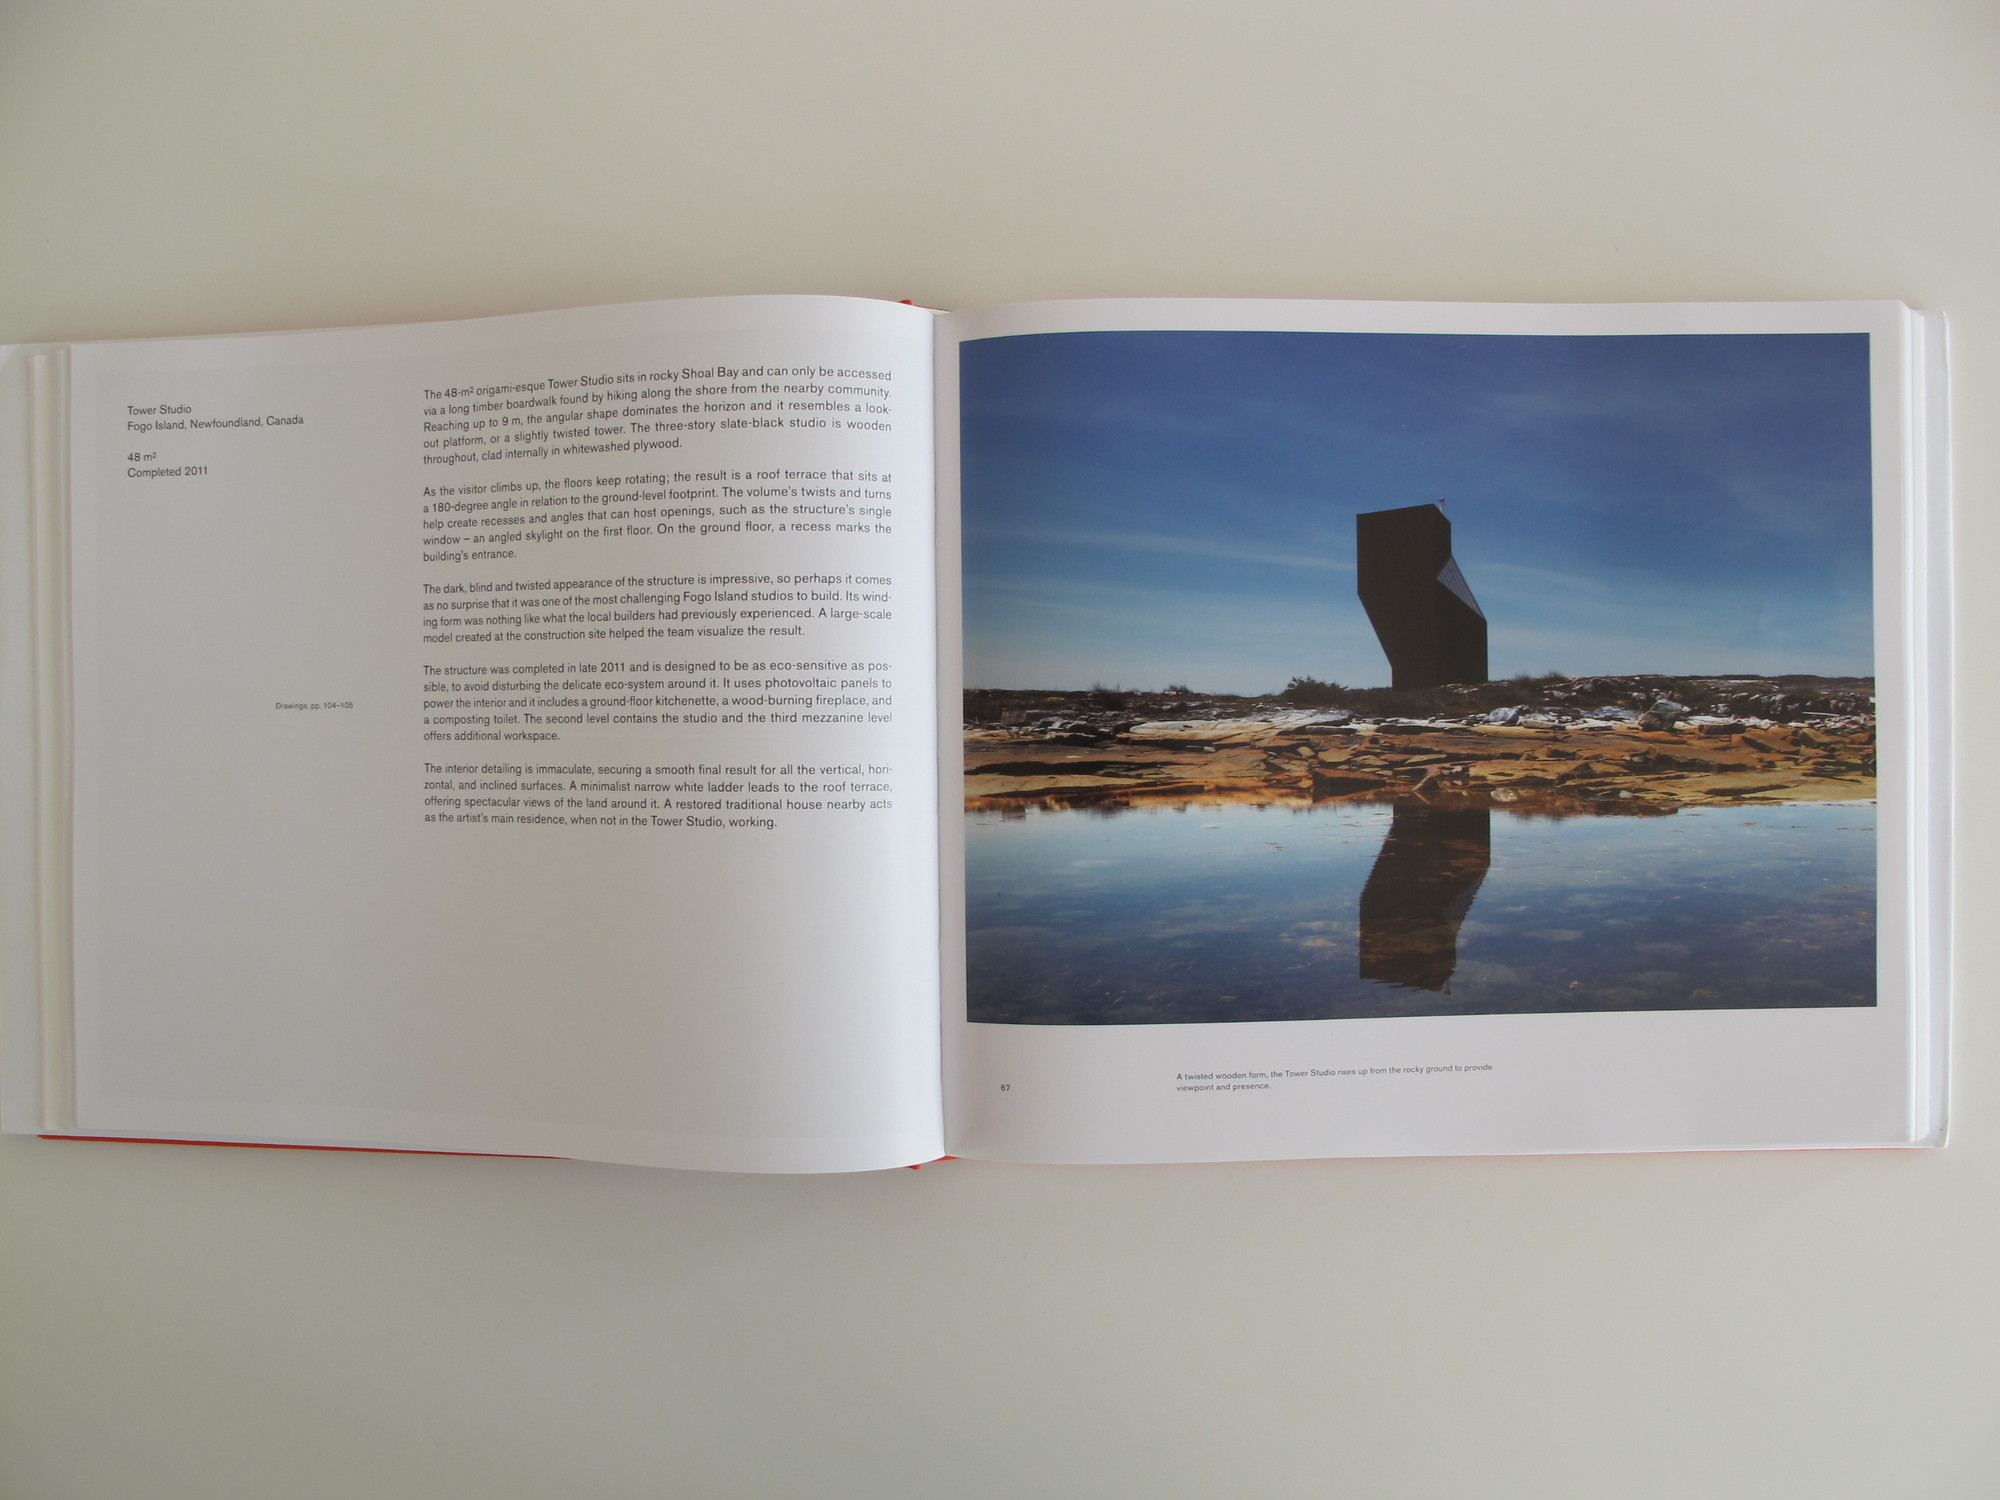 Todd Saunders: Architecture in Northern Landscapes